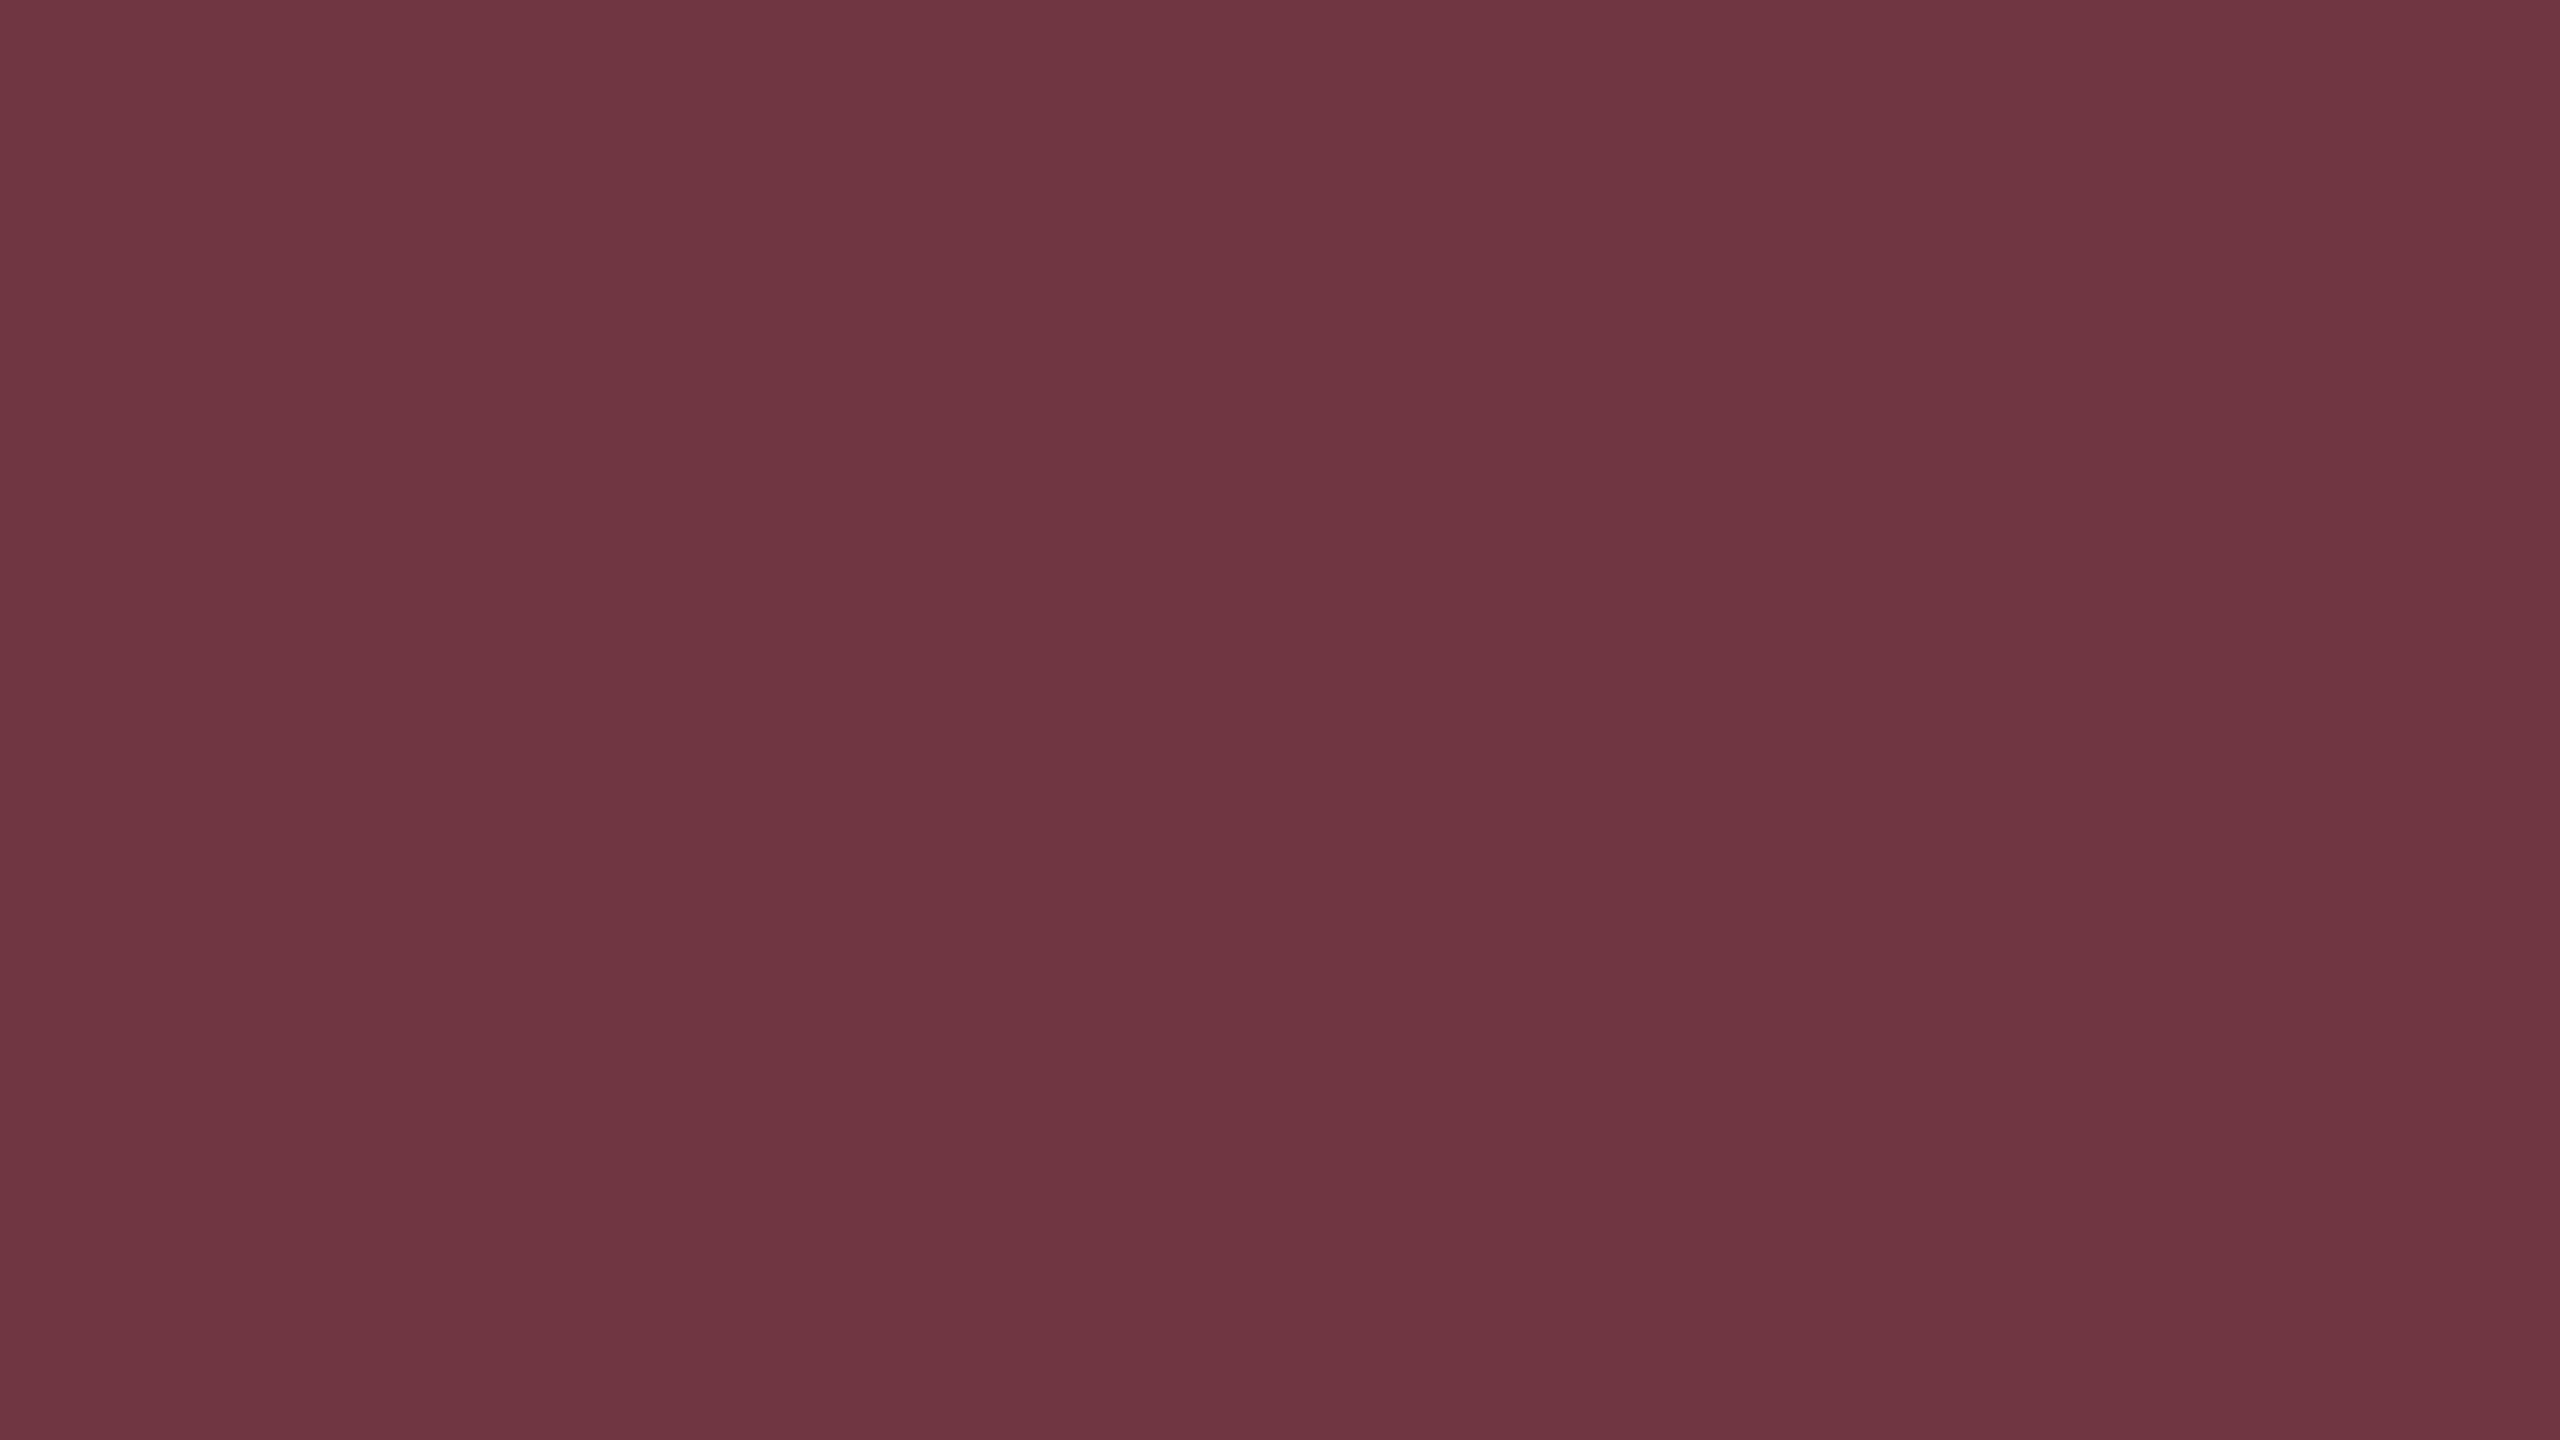 2560x1440-catawba-solid-color-background